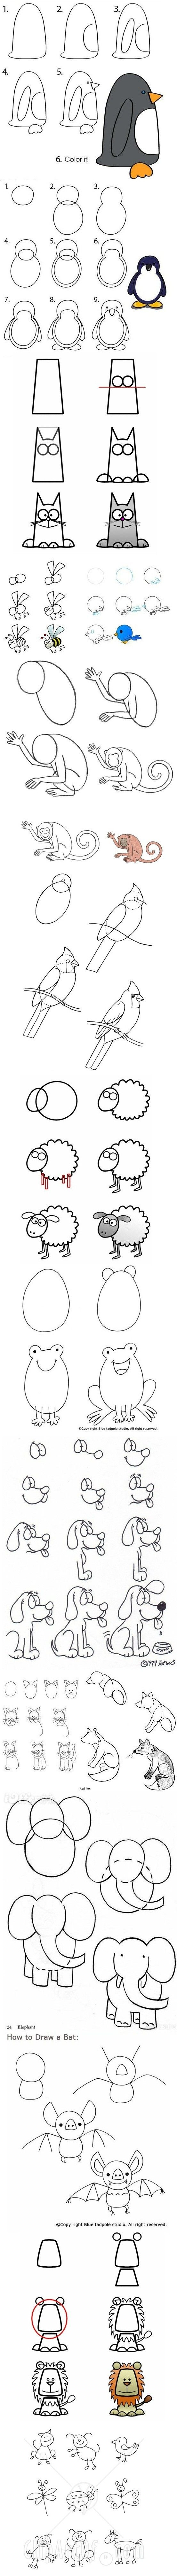 How to draw animals for kids - homeschool art